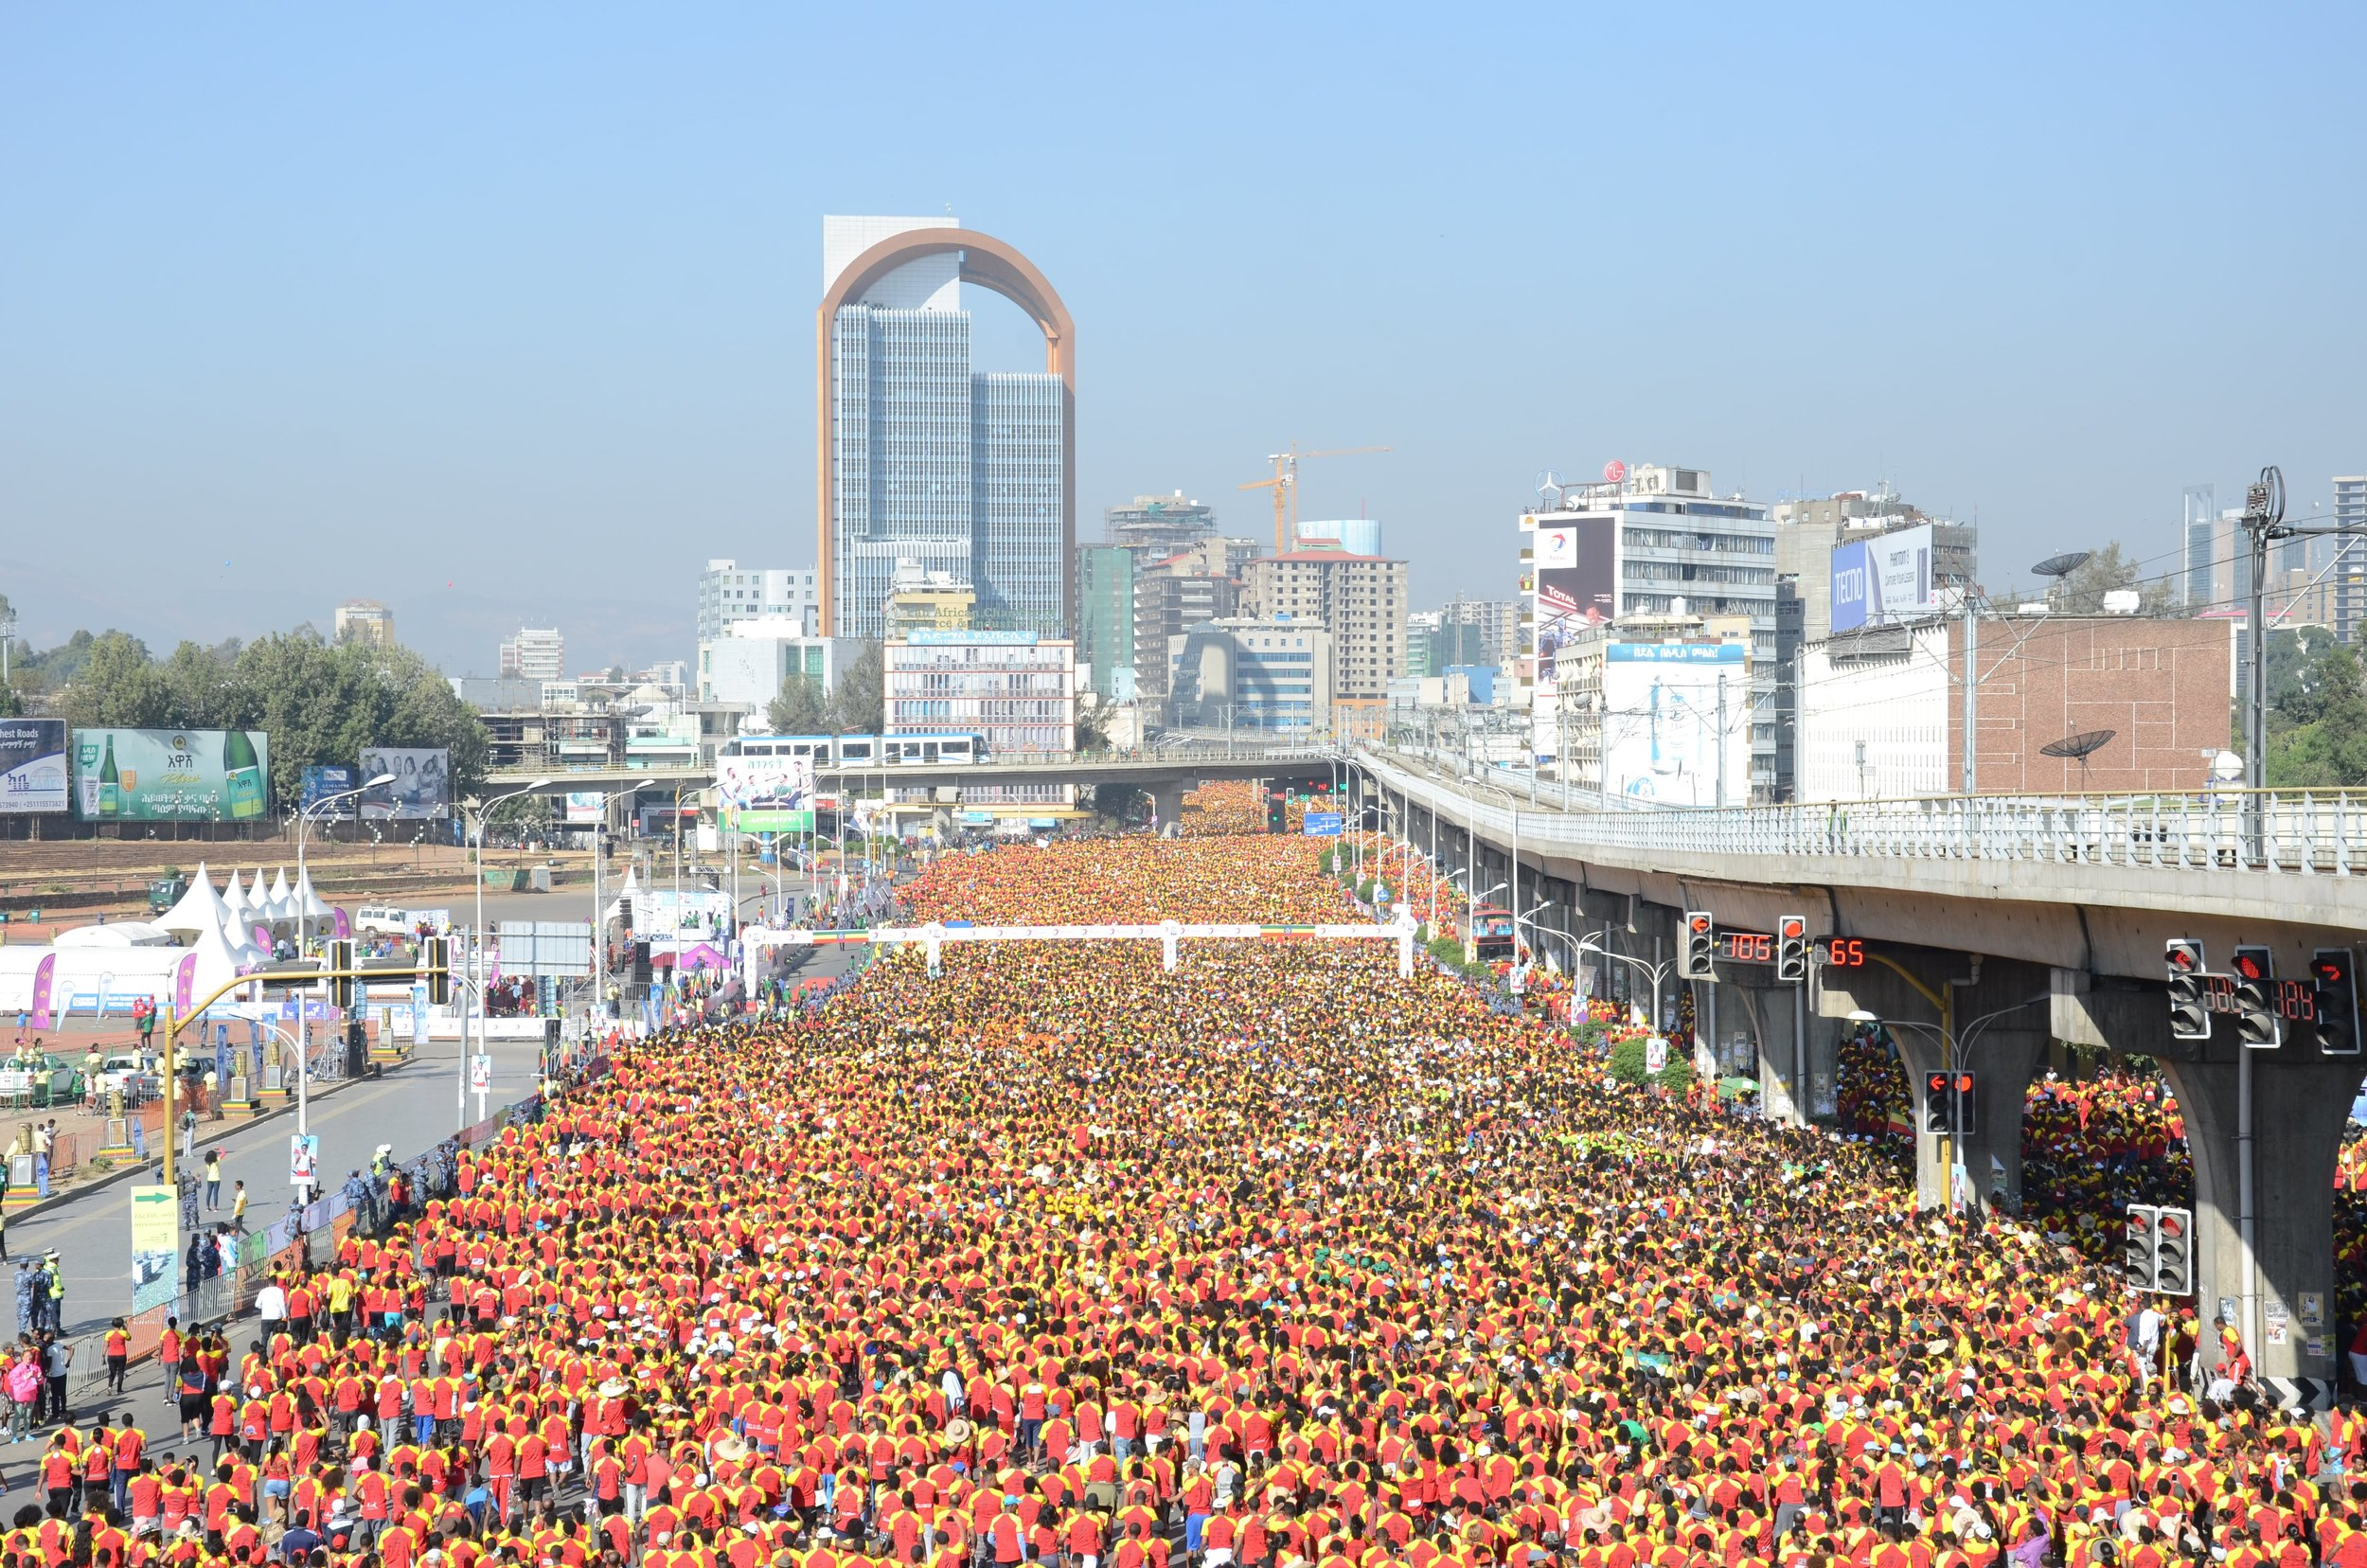 The start line at the Great Ethiopian Run